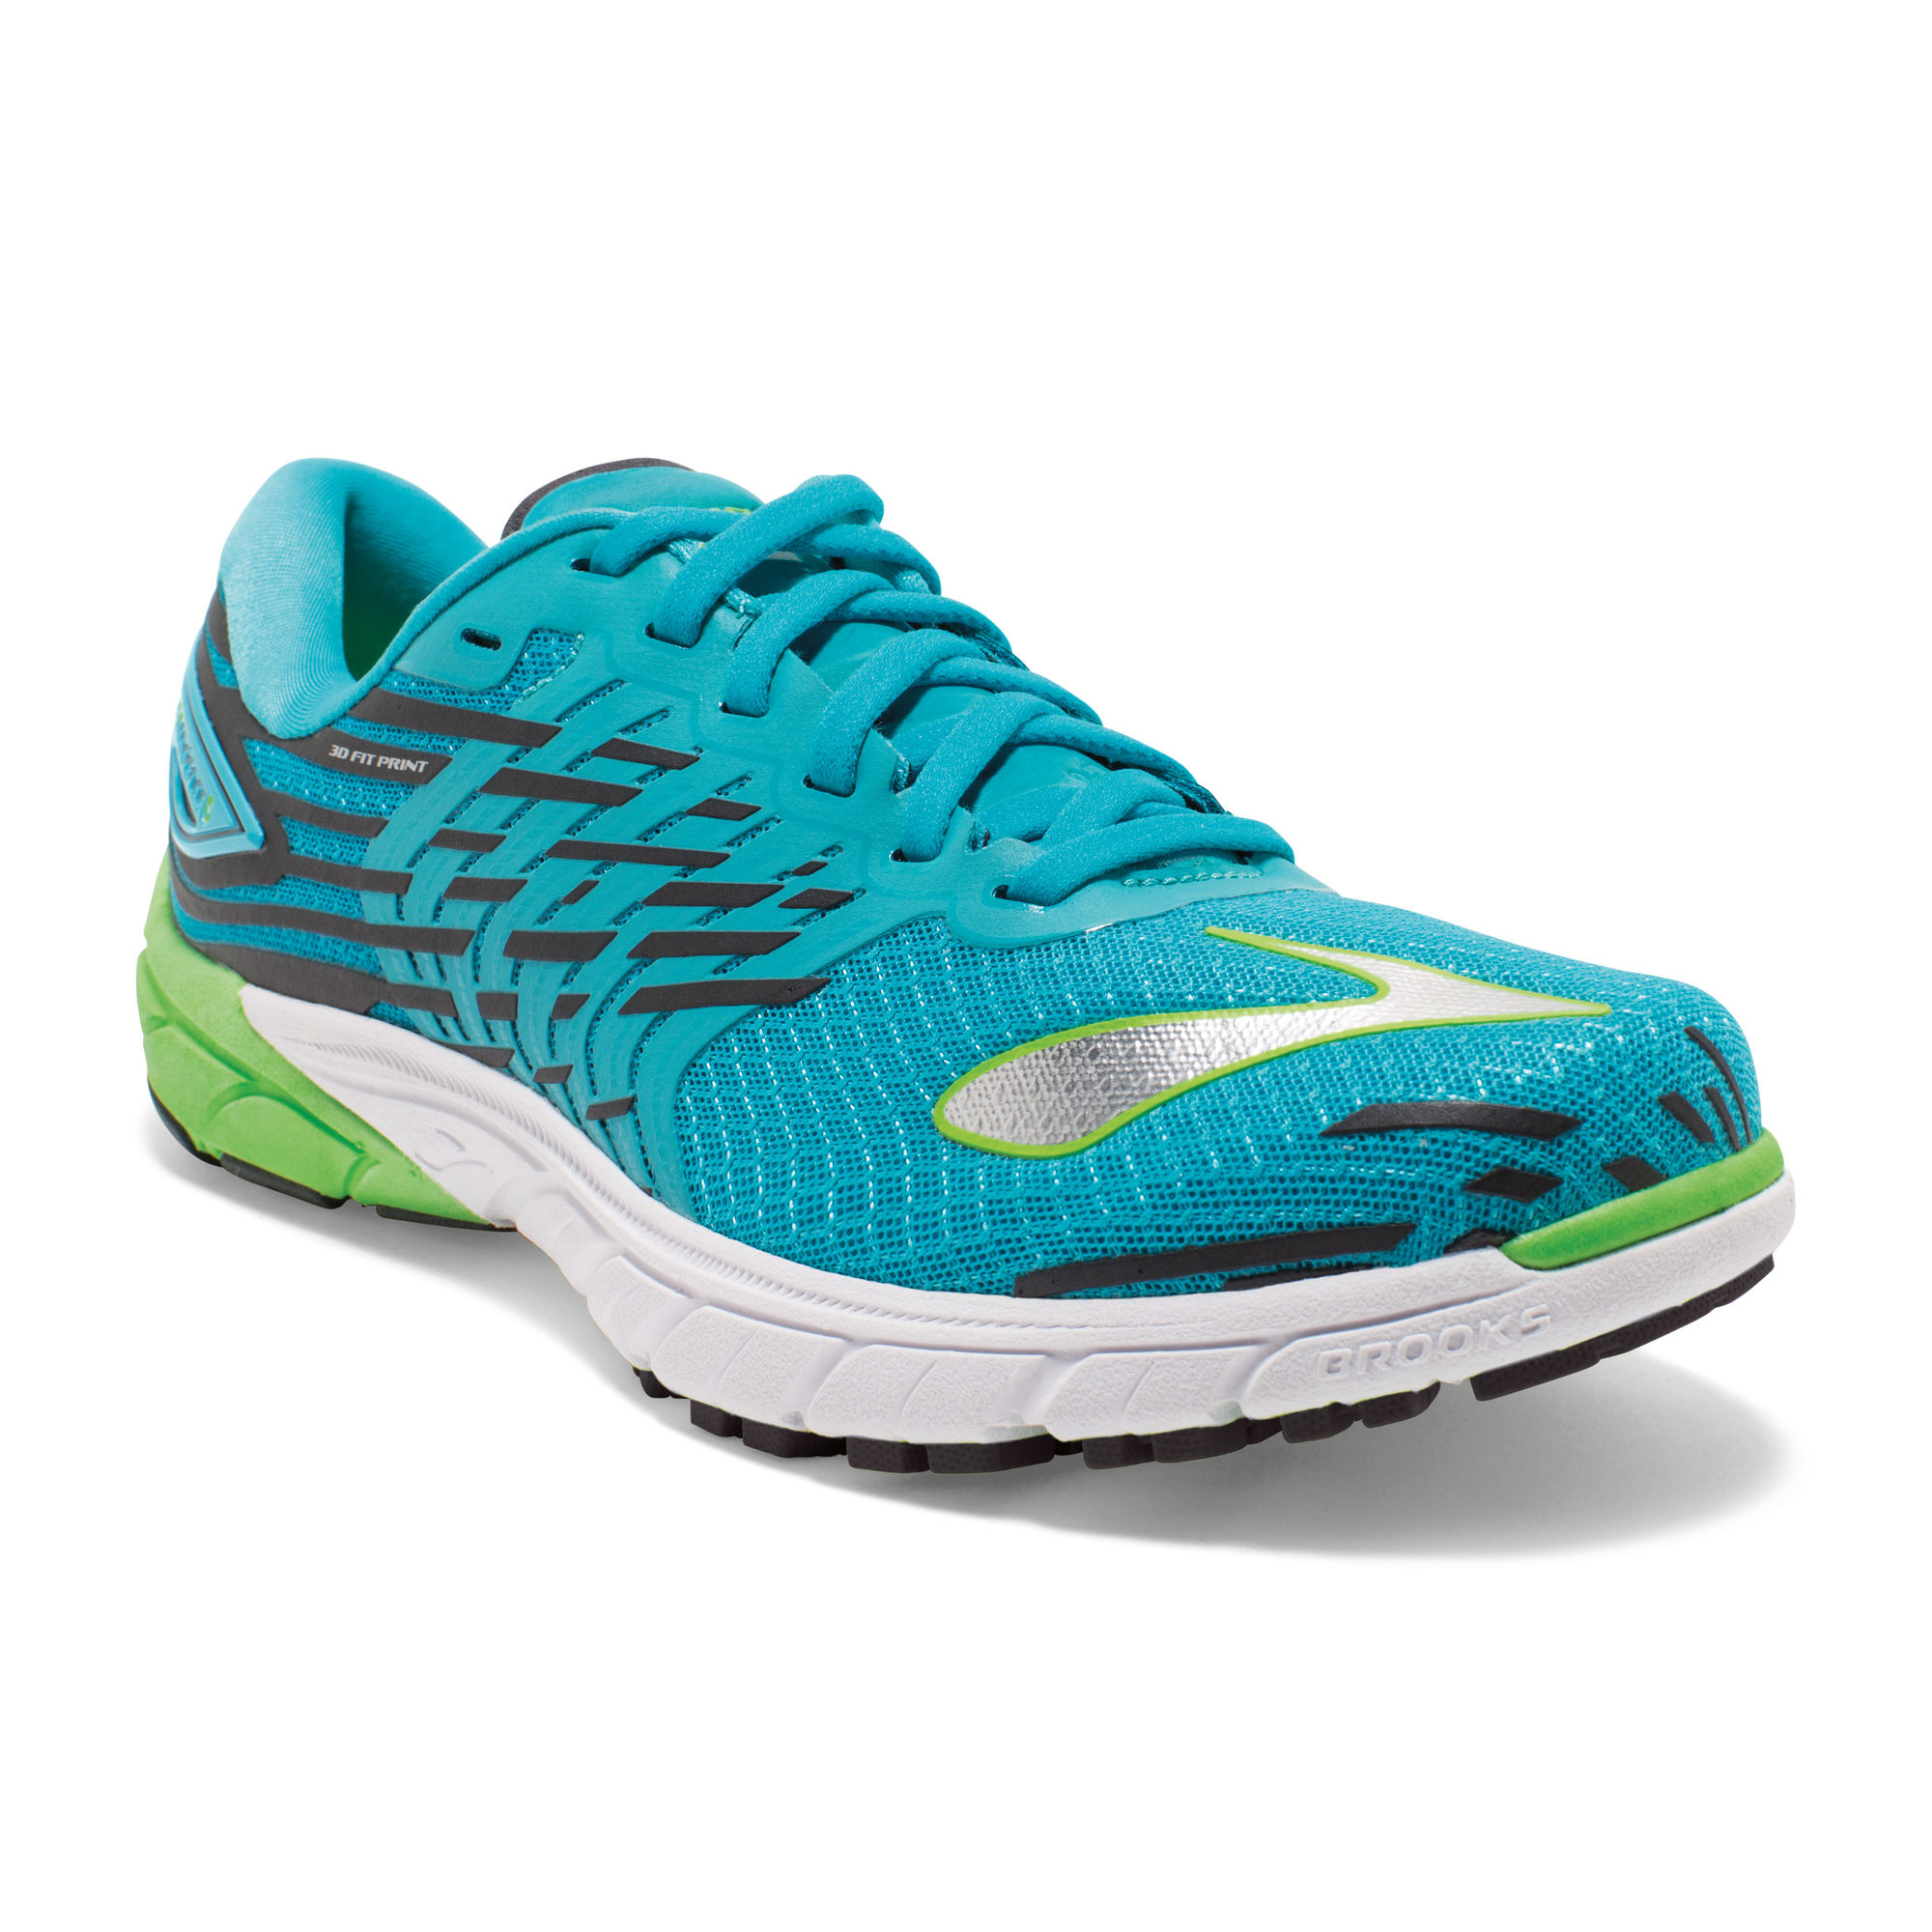 Brooks Lady PureCadence 5 in Blau